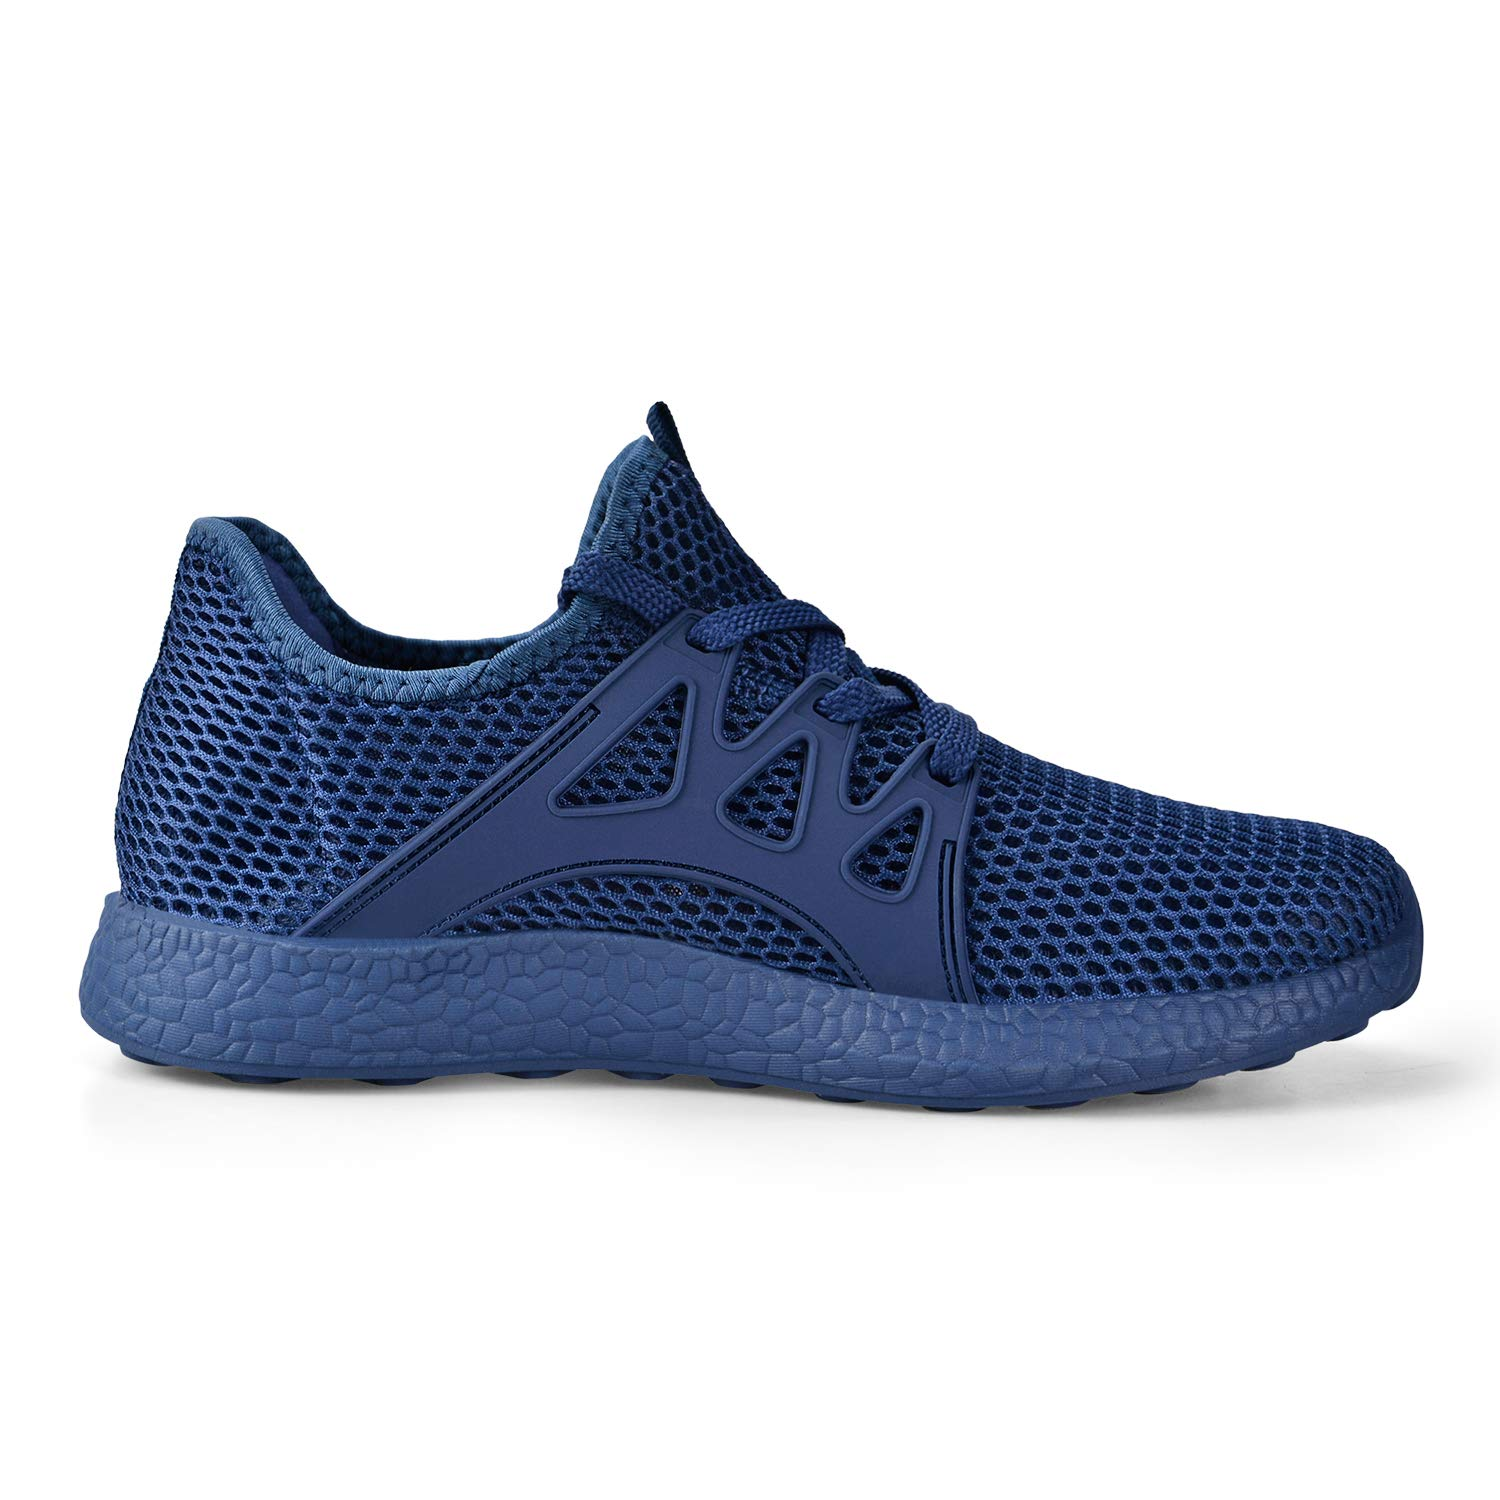 Feetmat Womens Sneakers Ultra Lightweight Breathable Mesh Athletic Walking Running Shoes Blue 12 by Feetmat